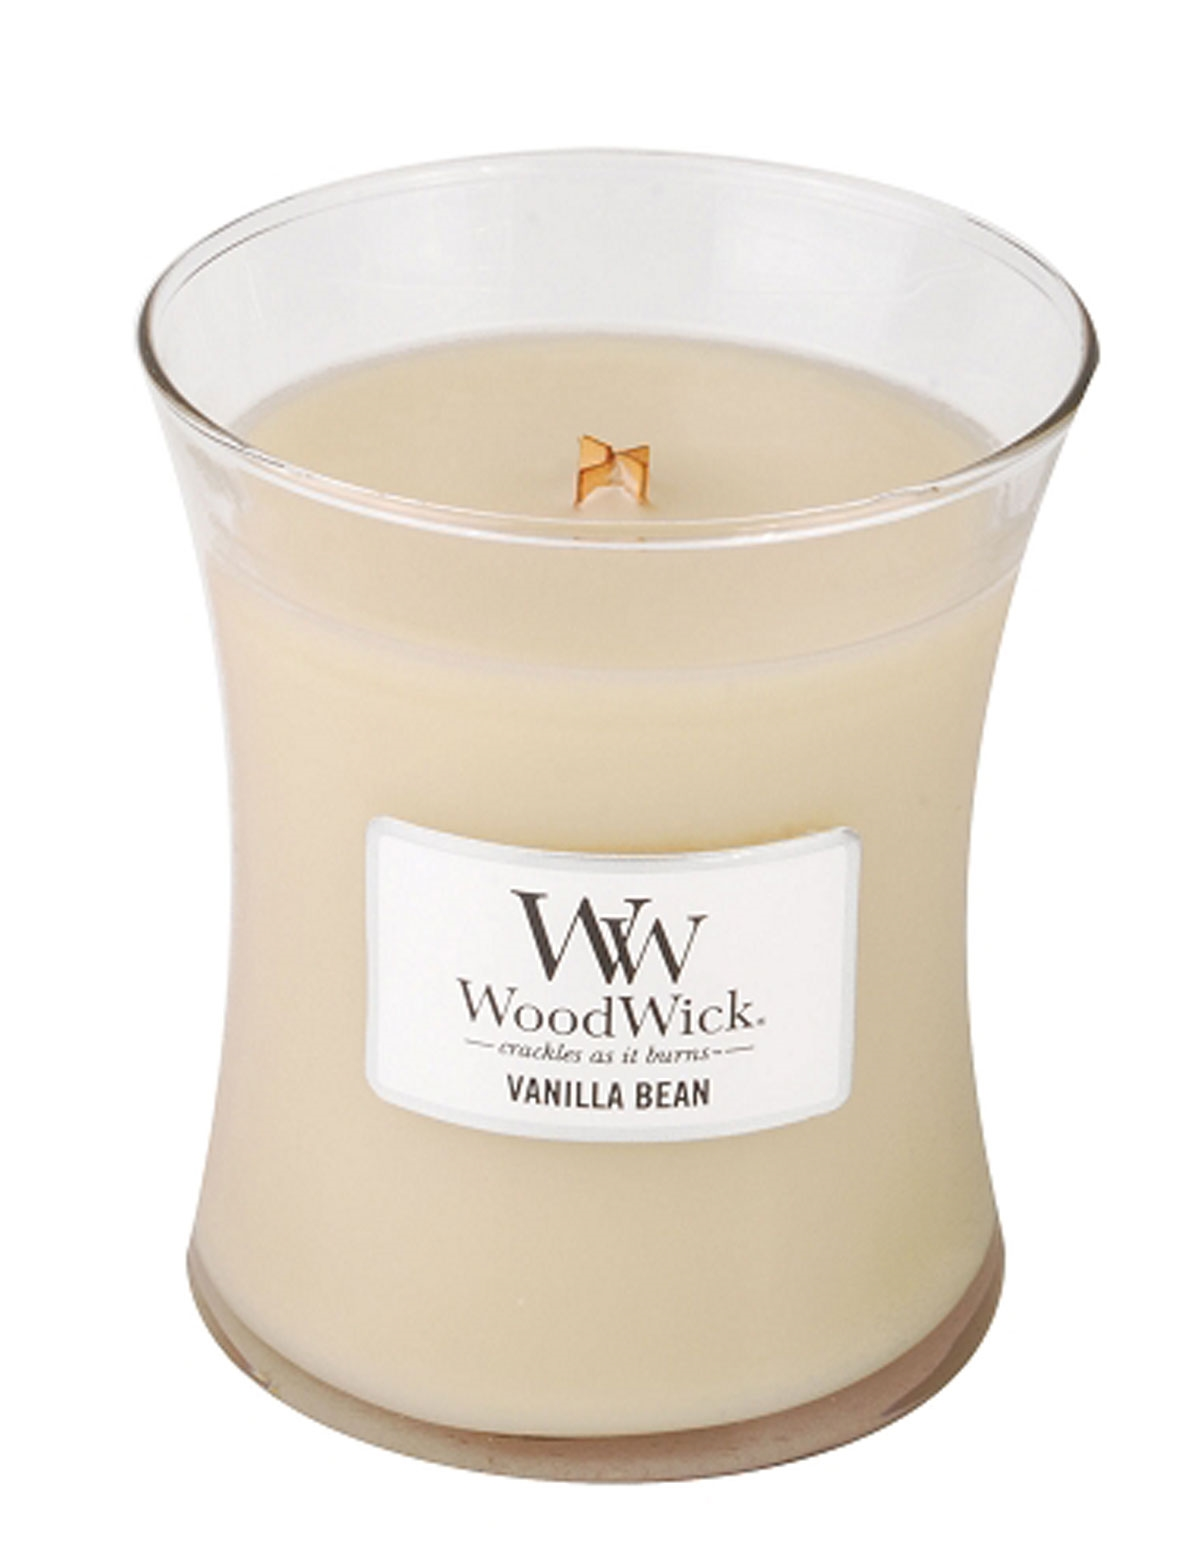 Vanilla Bean Medium Woodwick Candle